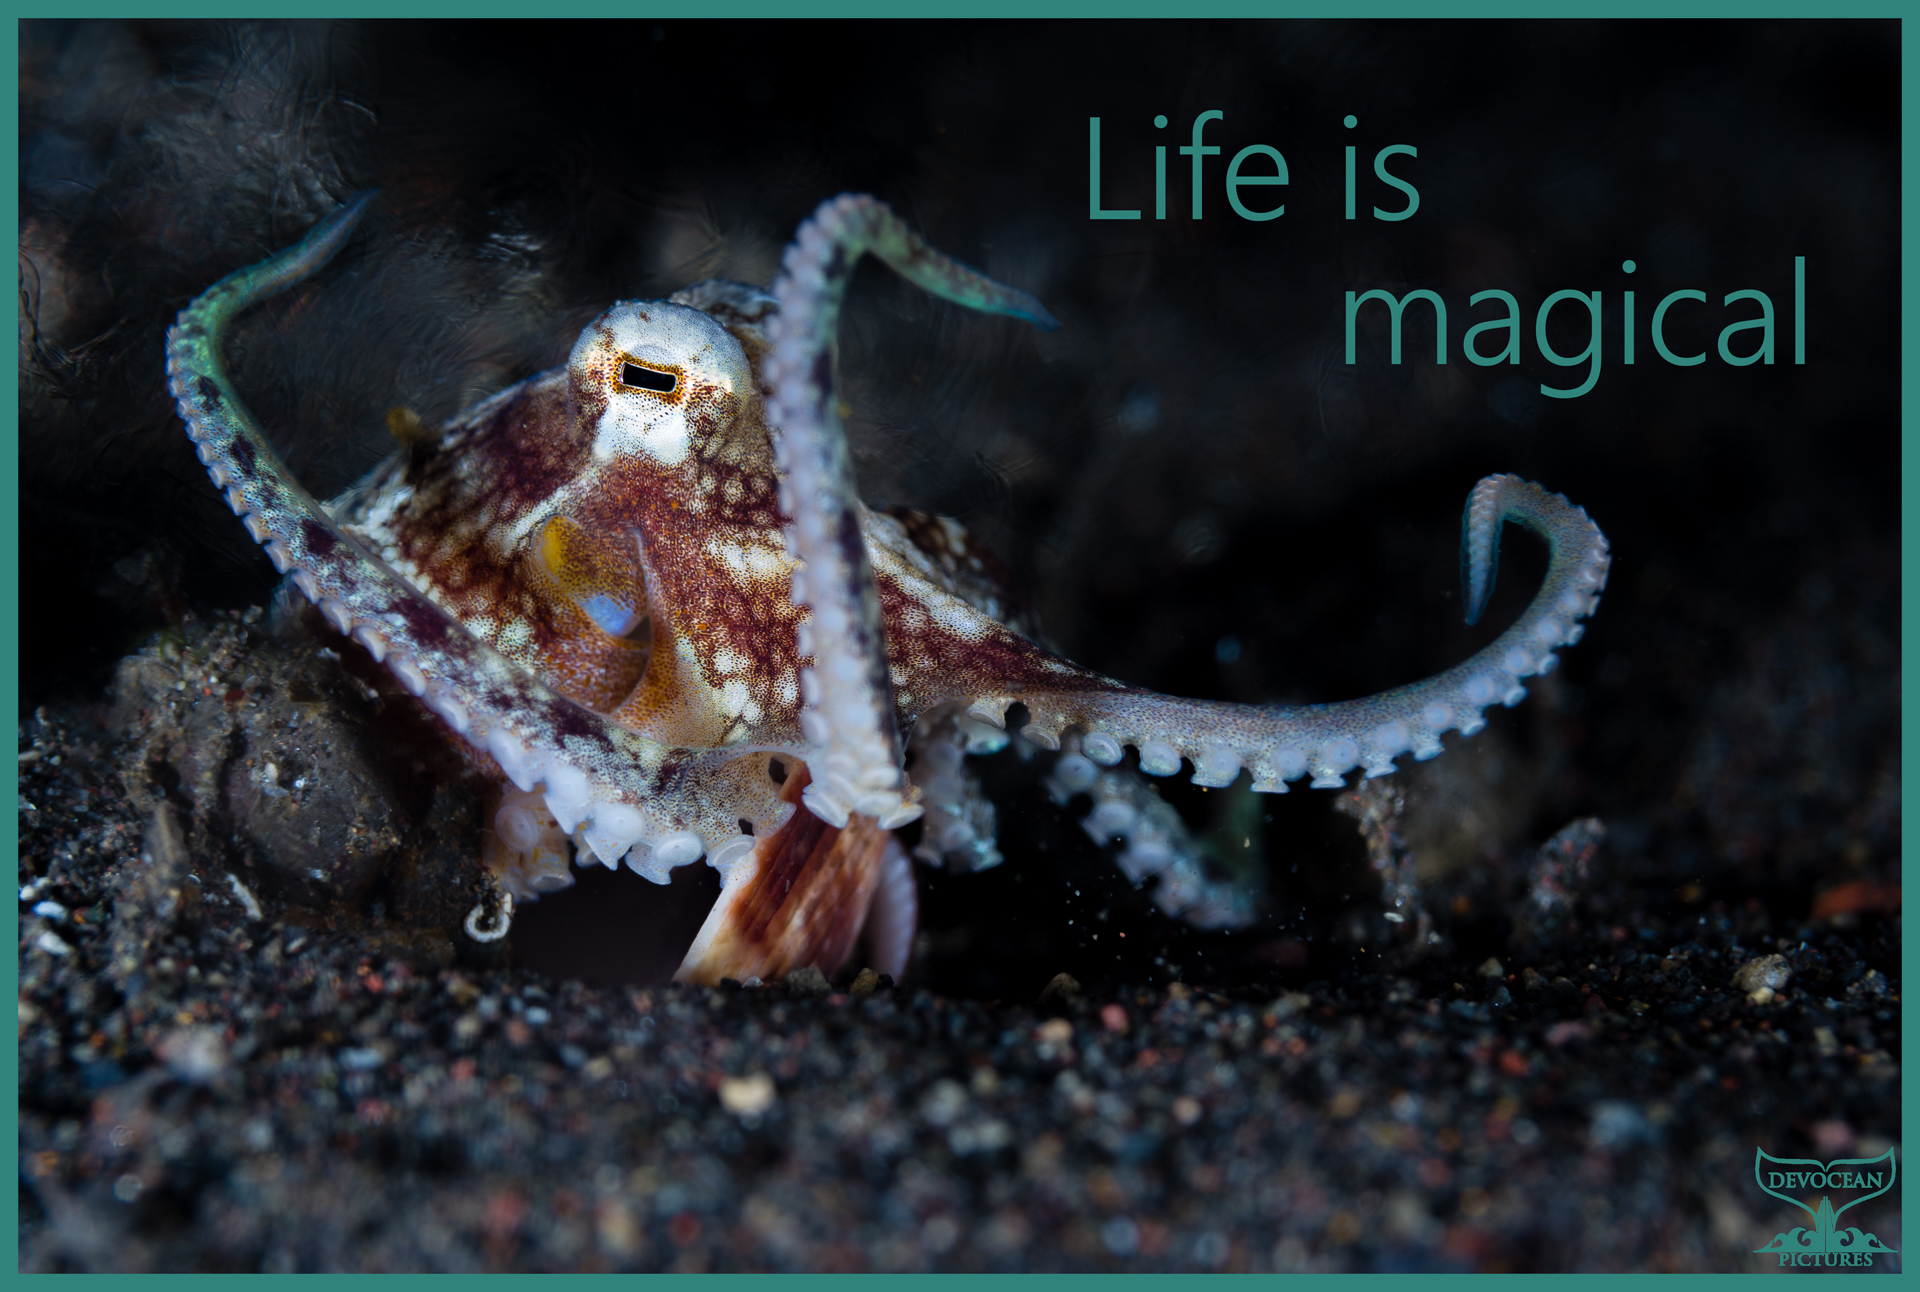 Underwater macro shot of a coconut octopus on a night dive in Amed (Bali, Indonesia) catching food with four arms while holding its two shells in place with the others. Postcard with warm regards: Life is magical.